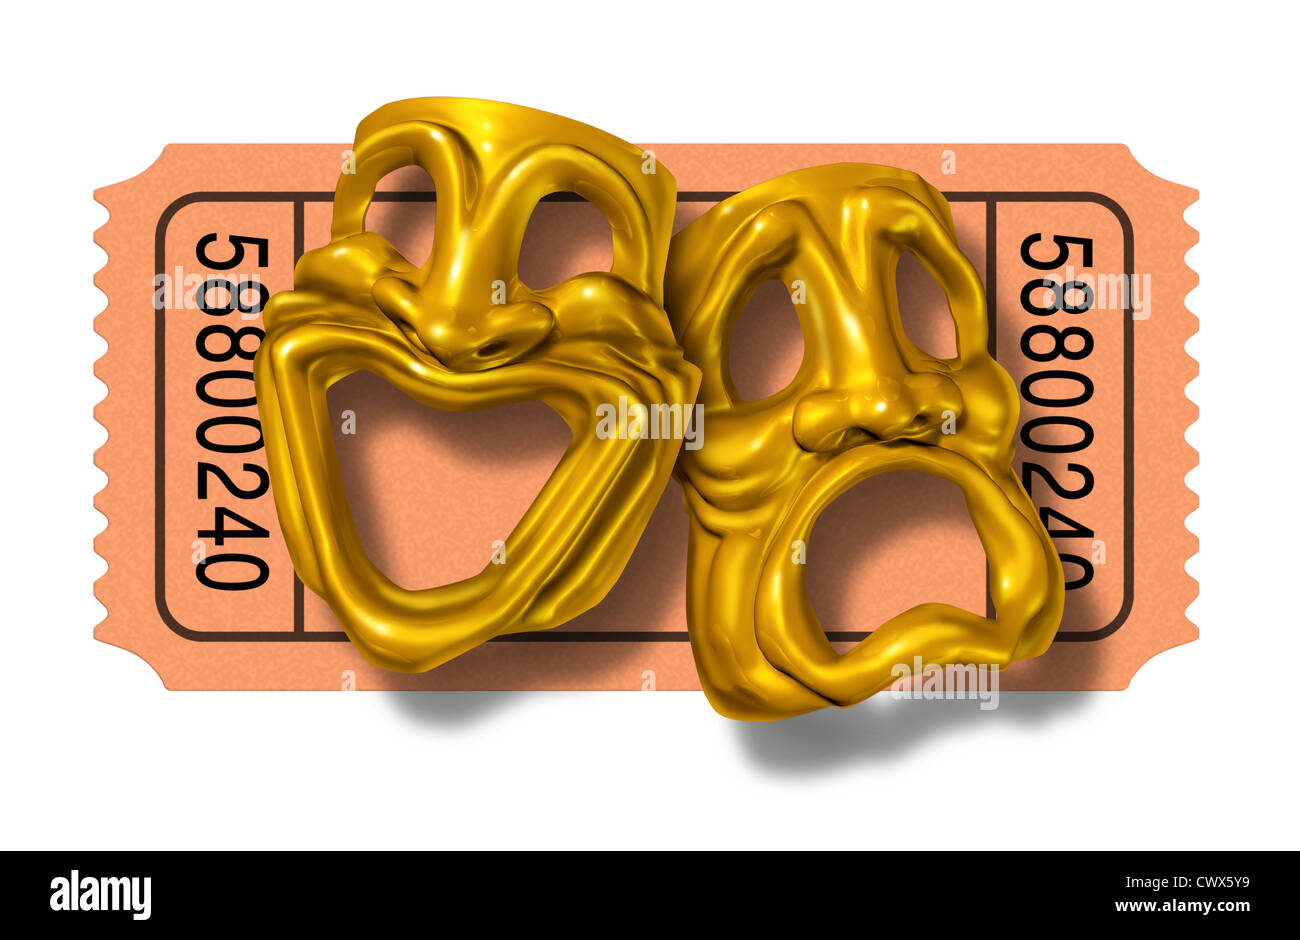 Movie ticket stub with gold comedy and tragedy masks symbol represented by two theatrical expressions with one face - Stock Image